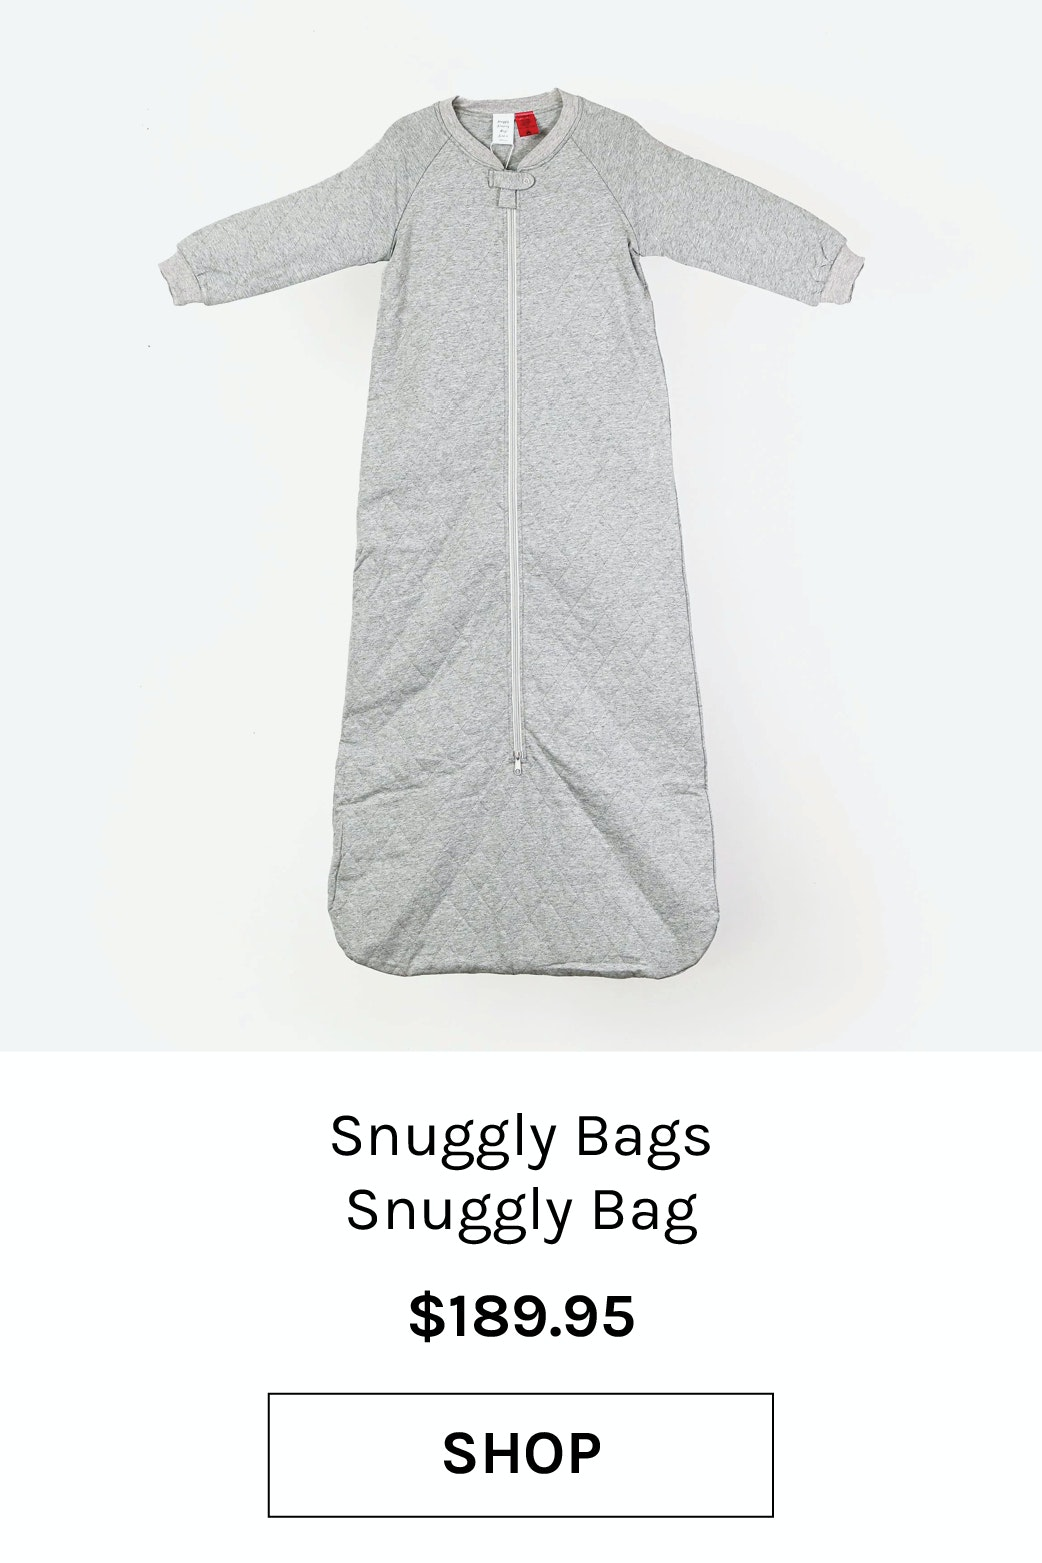 Snuggly Bags Snuggly Bag